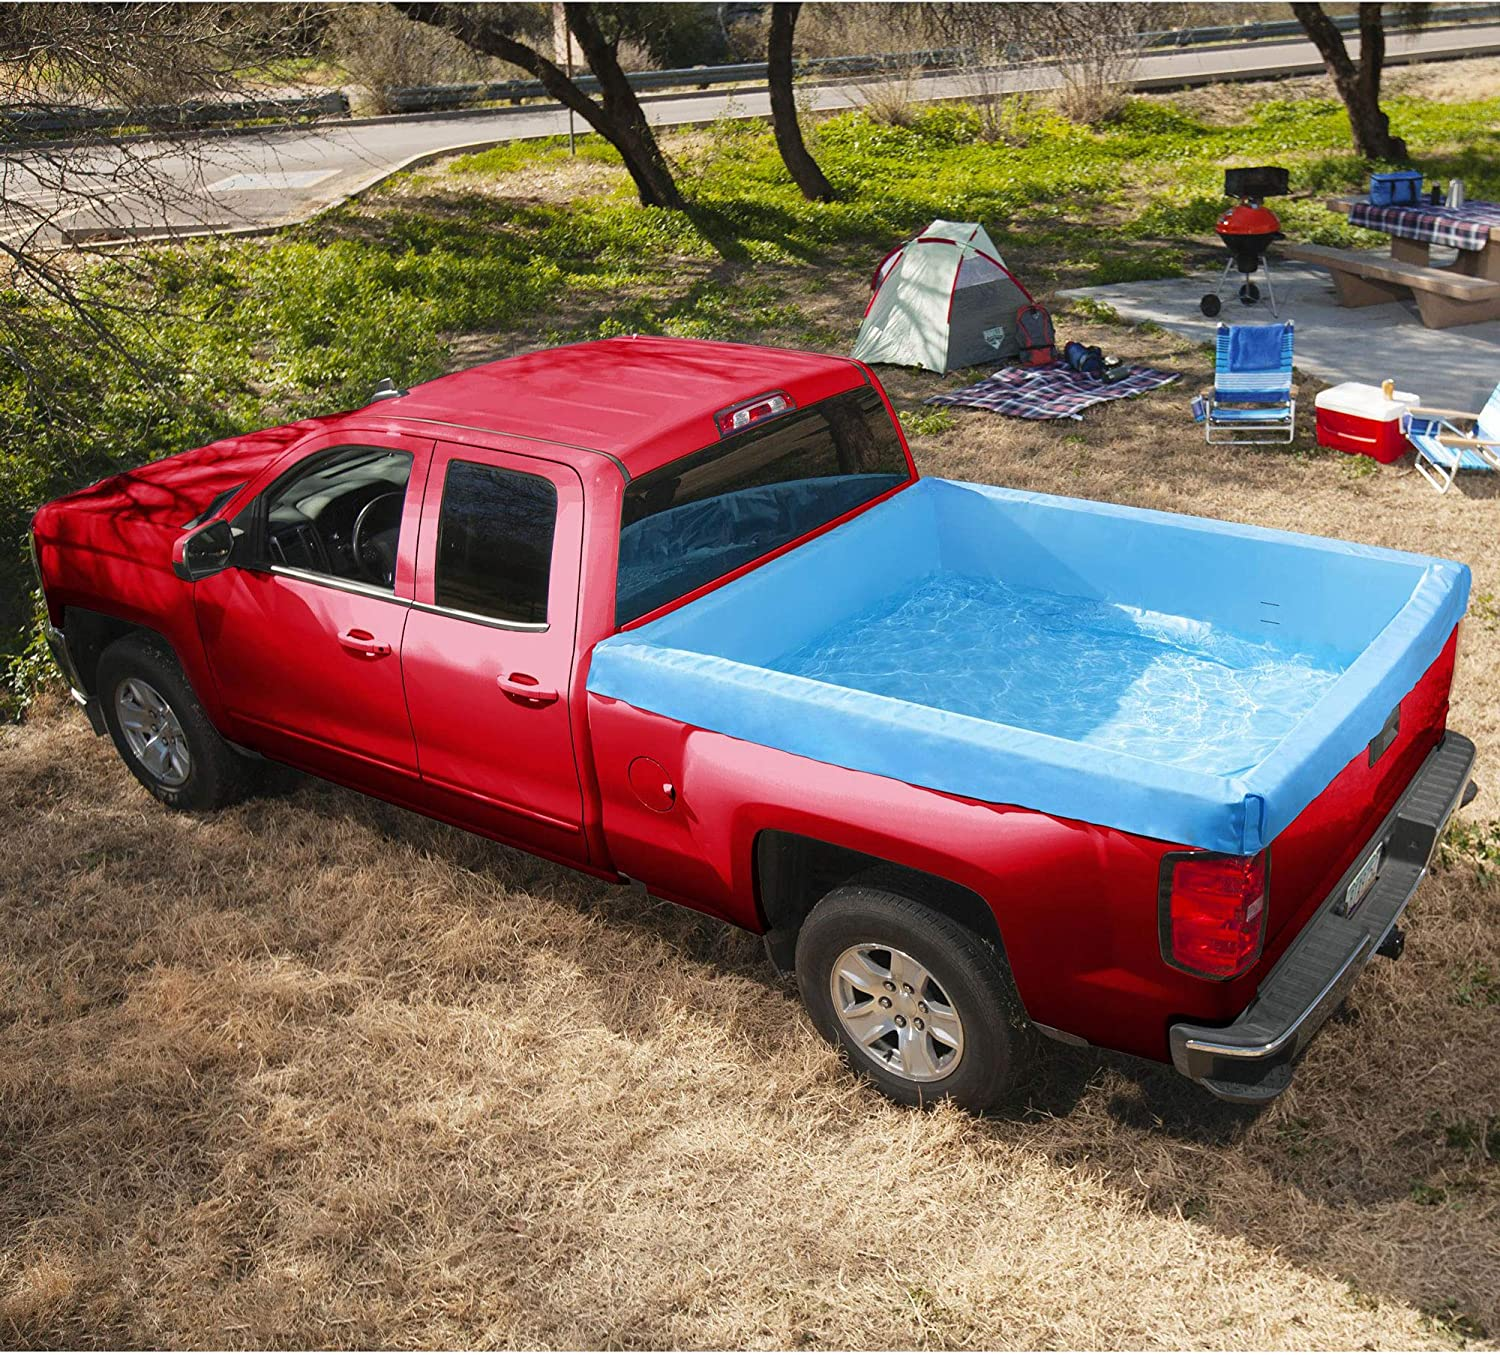 Gard Summer Waves Inflatable Truck Bed Pool 66x62x21